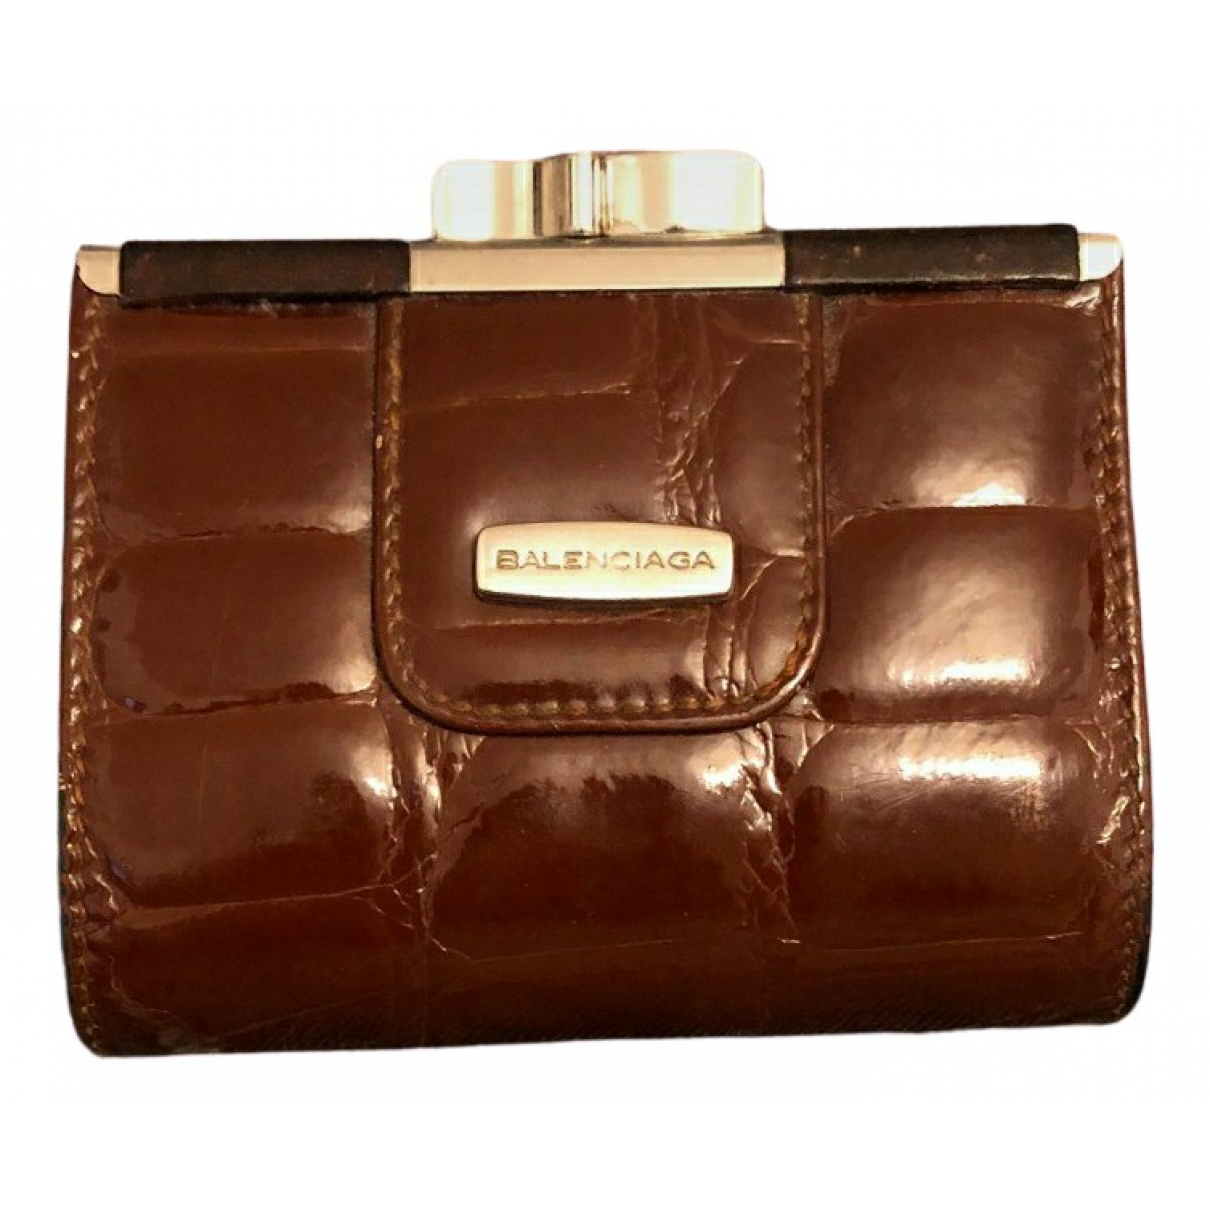 Balenciaga N Brown Patent leather wallet for Women N